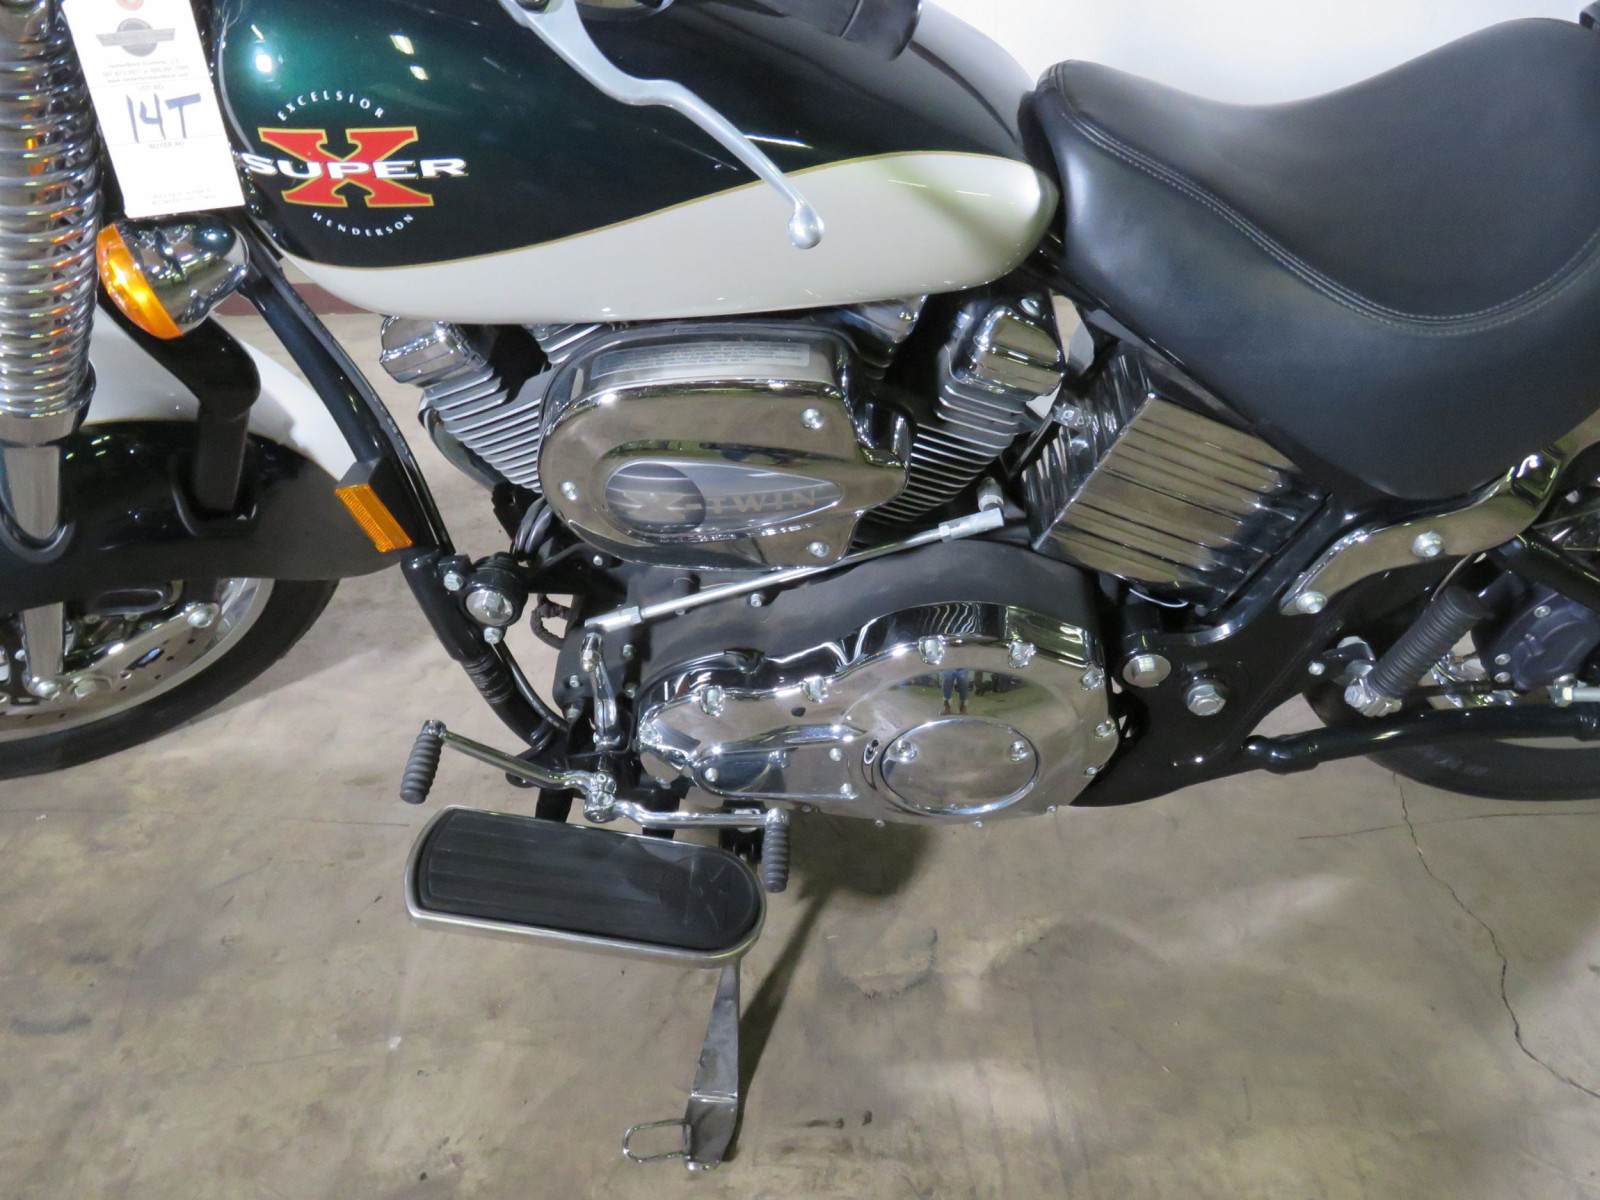 2000 Excelsior Henderson Super X Motorcycle - Image 7